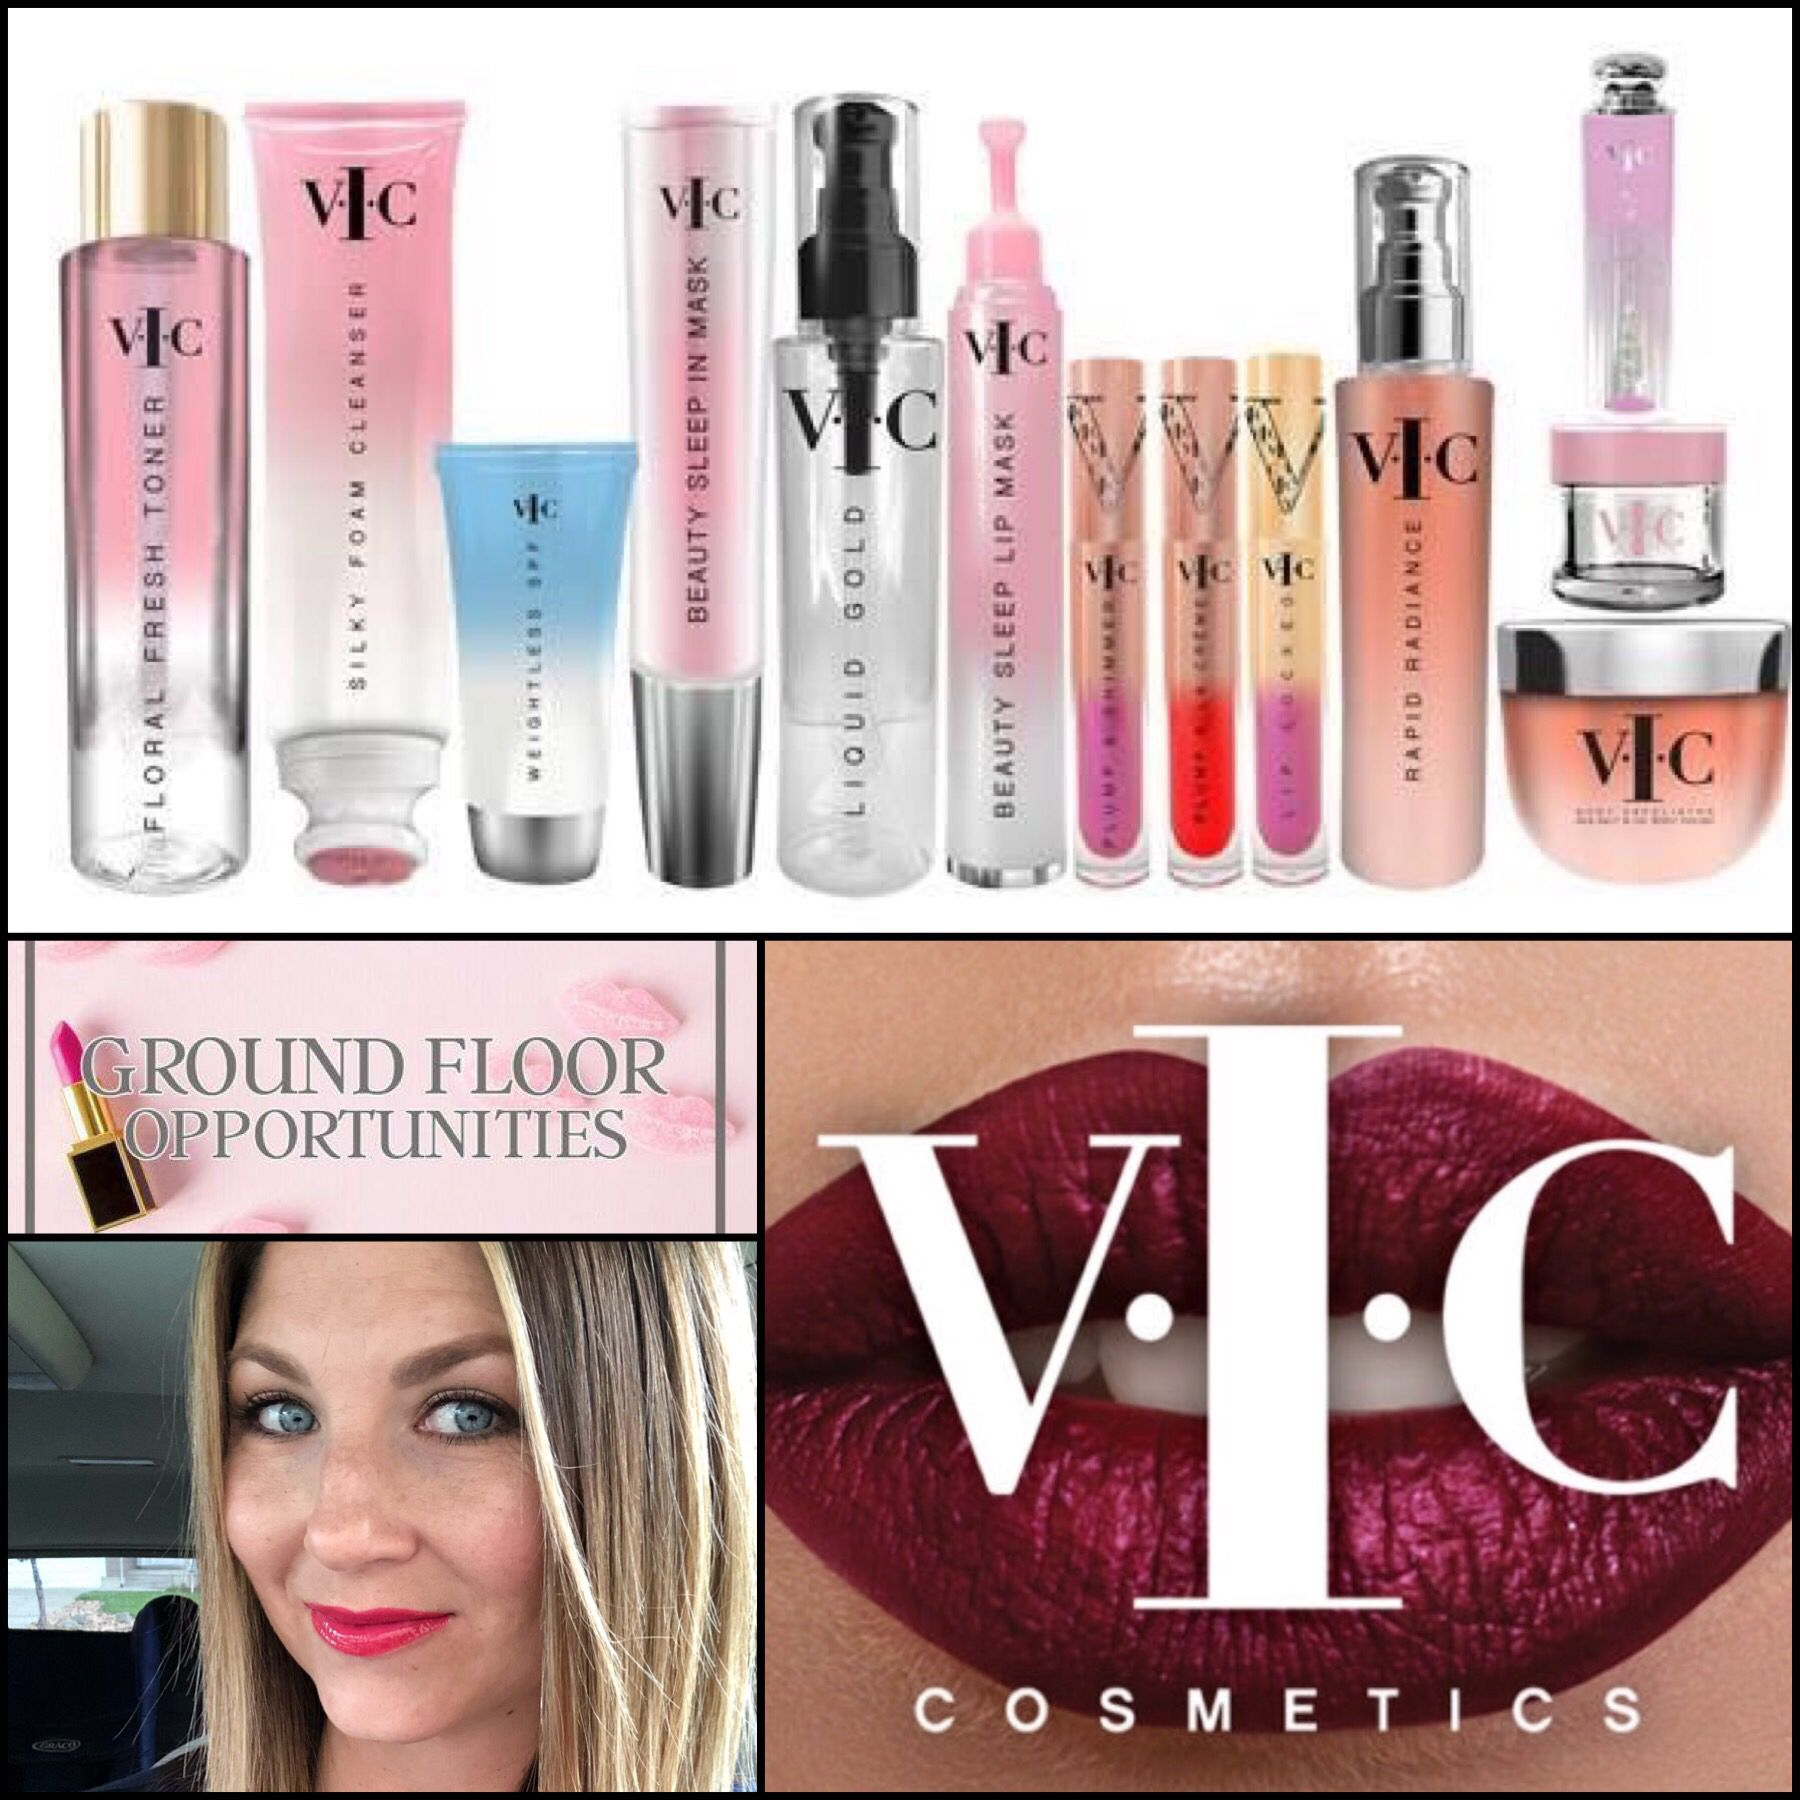 Work from home start up cost 0 Cosmetic companies, New